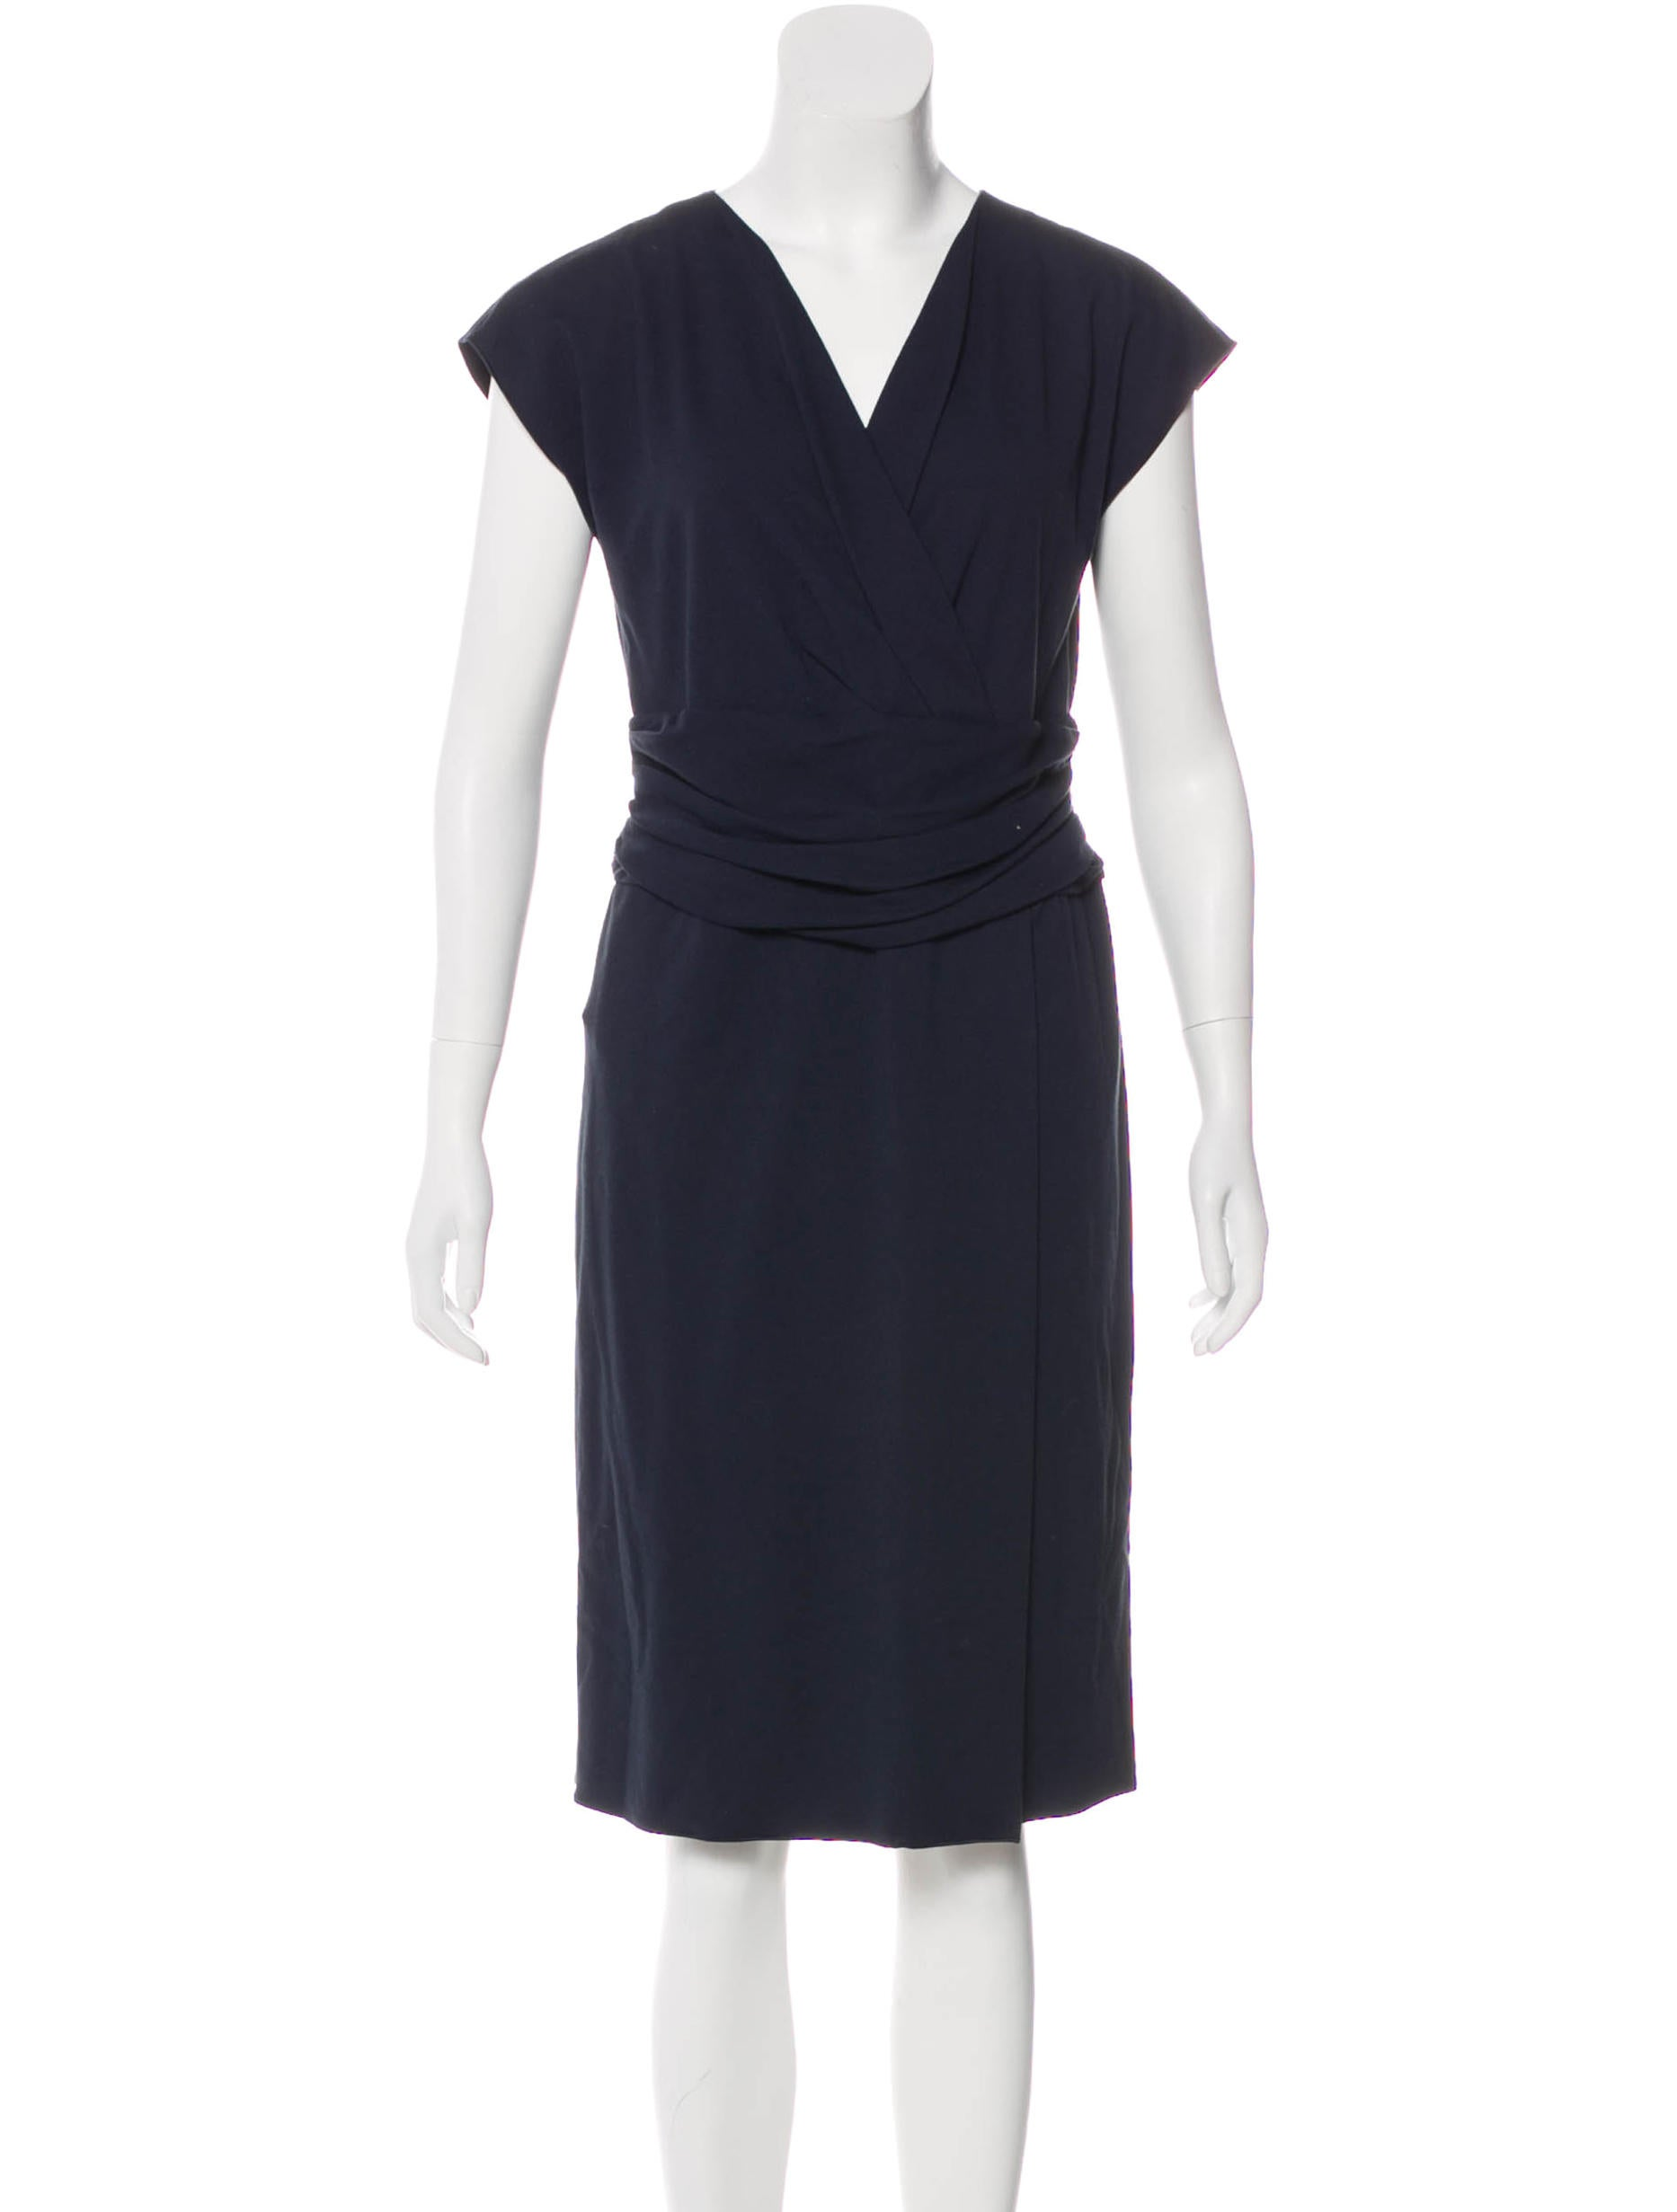 ad4ff8ef845 Armani Collezioni Surplice Neck Midi Dress - Clothing - ARR25434 ...